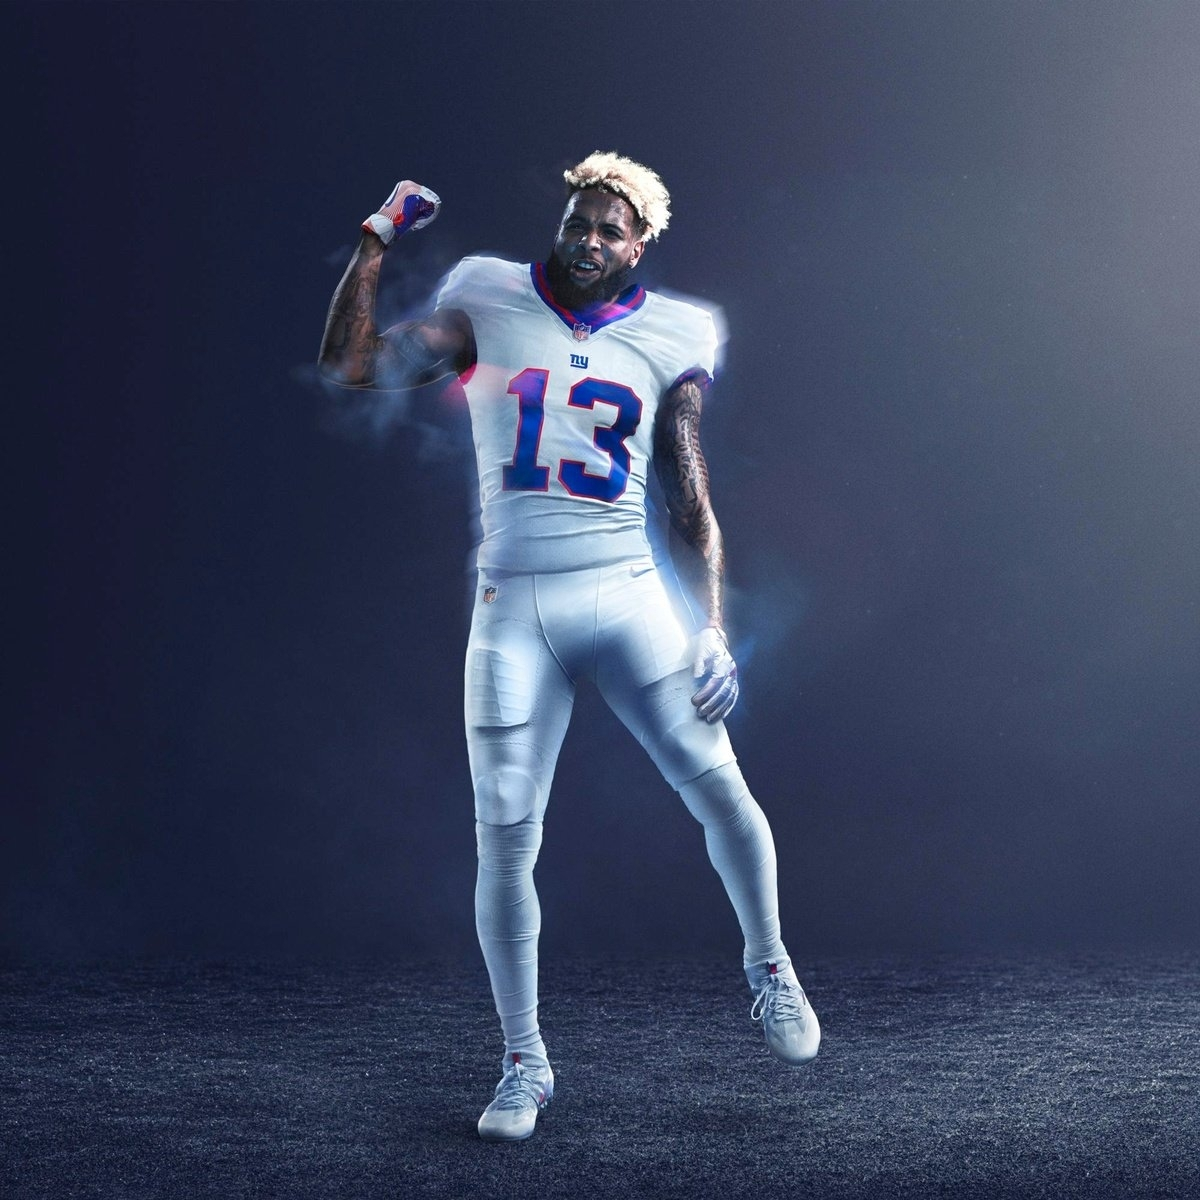 """odell beckham jr on twitter: """".@nike color rush jersey tho! first"""